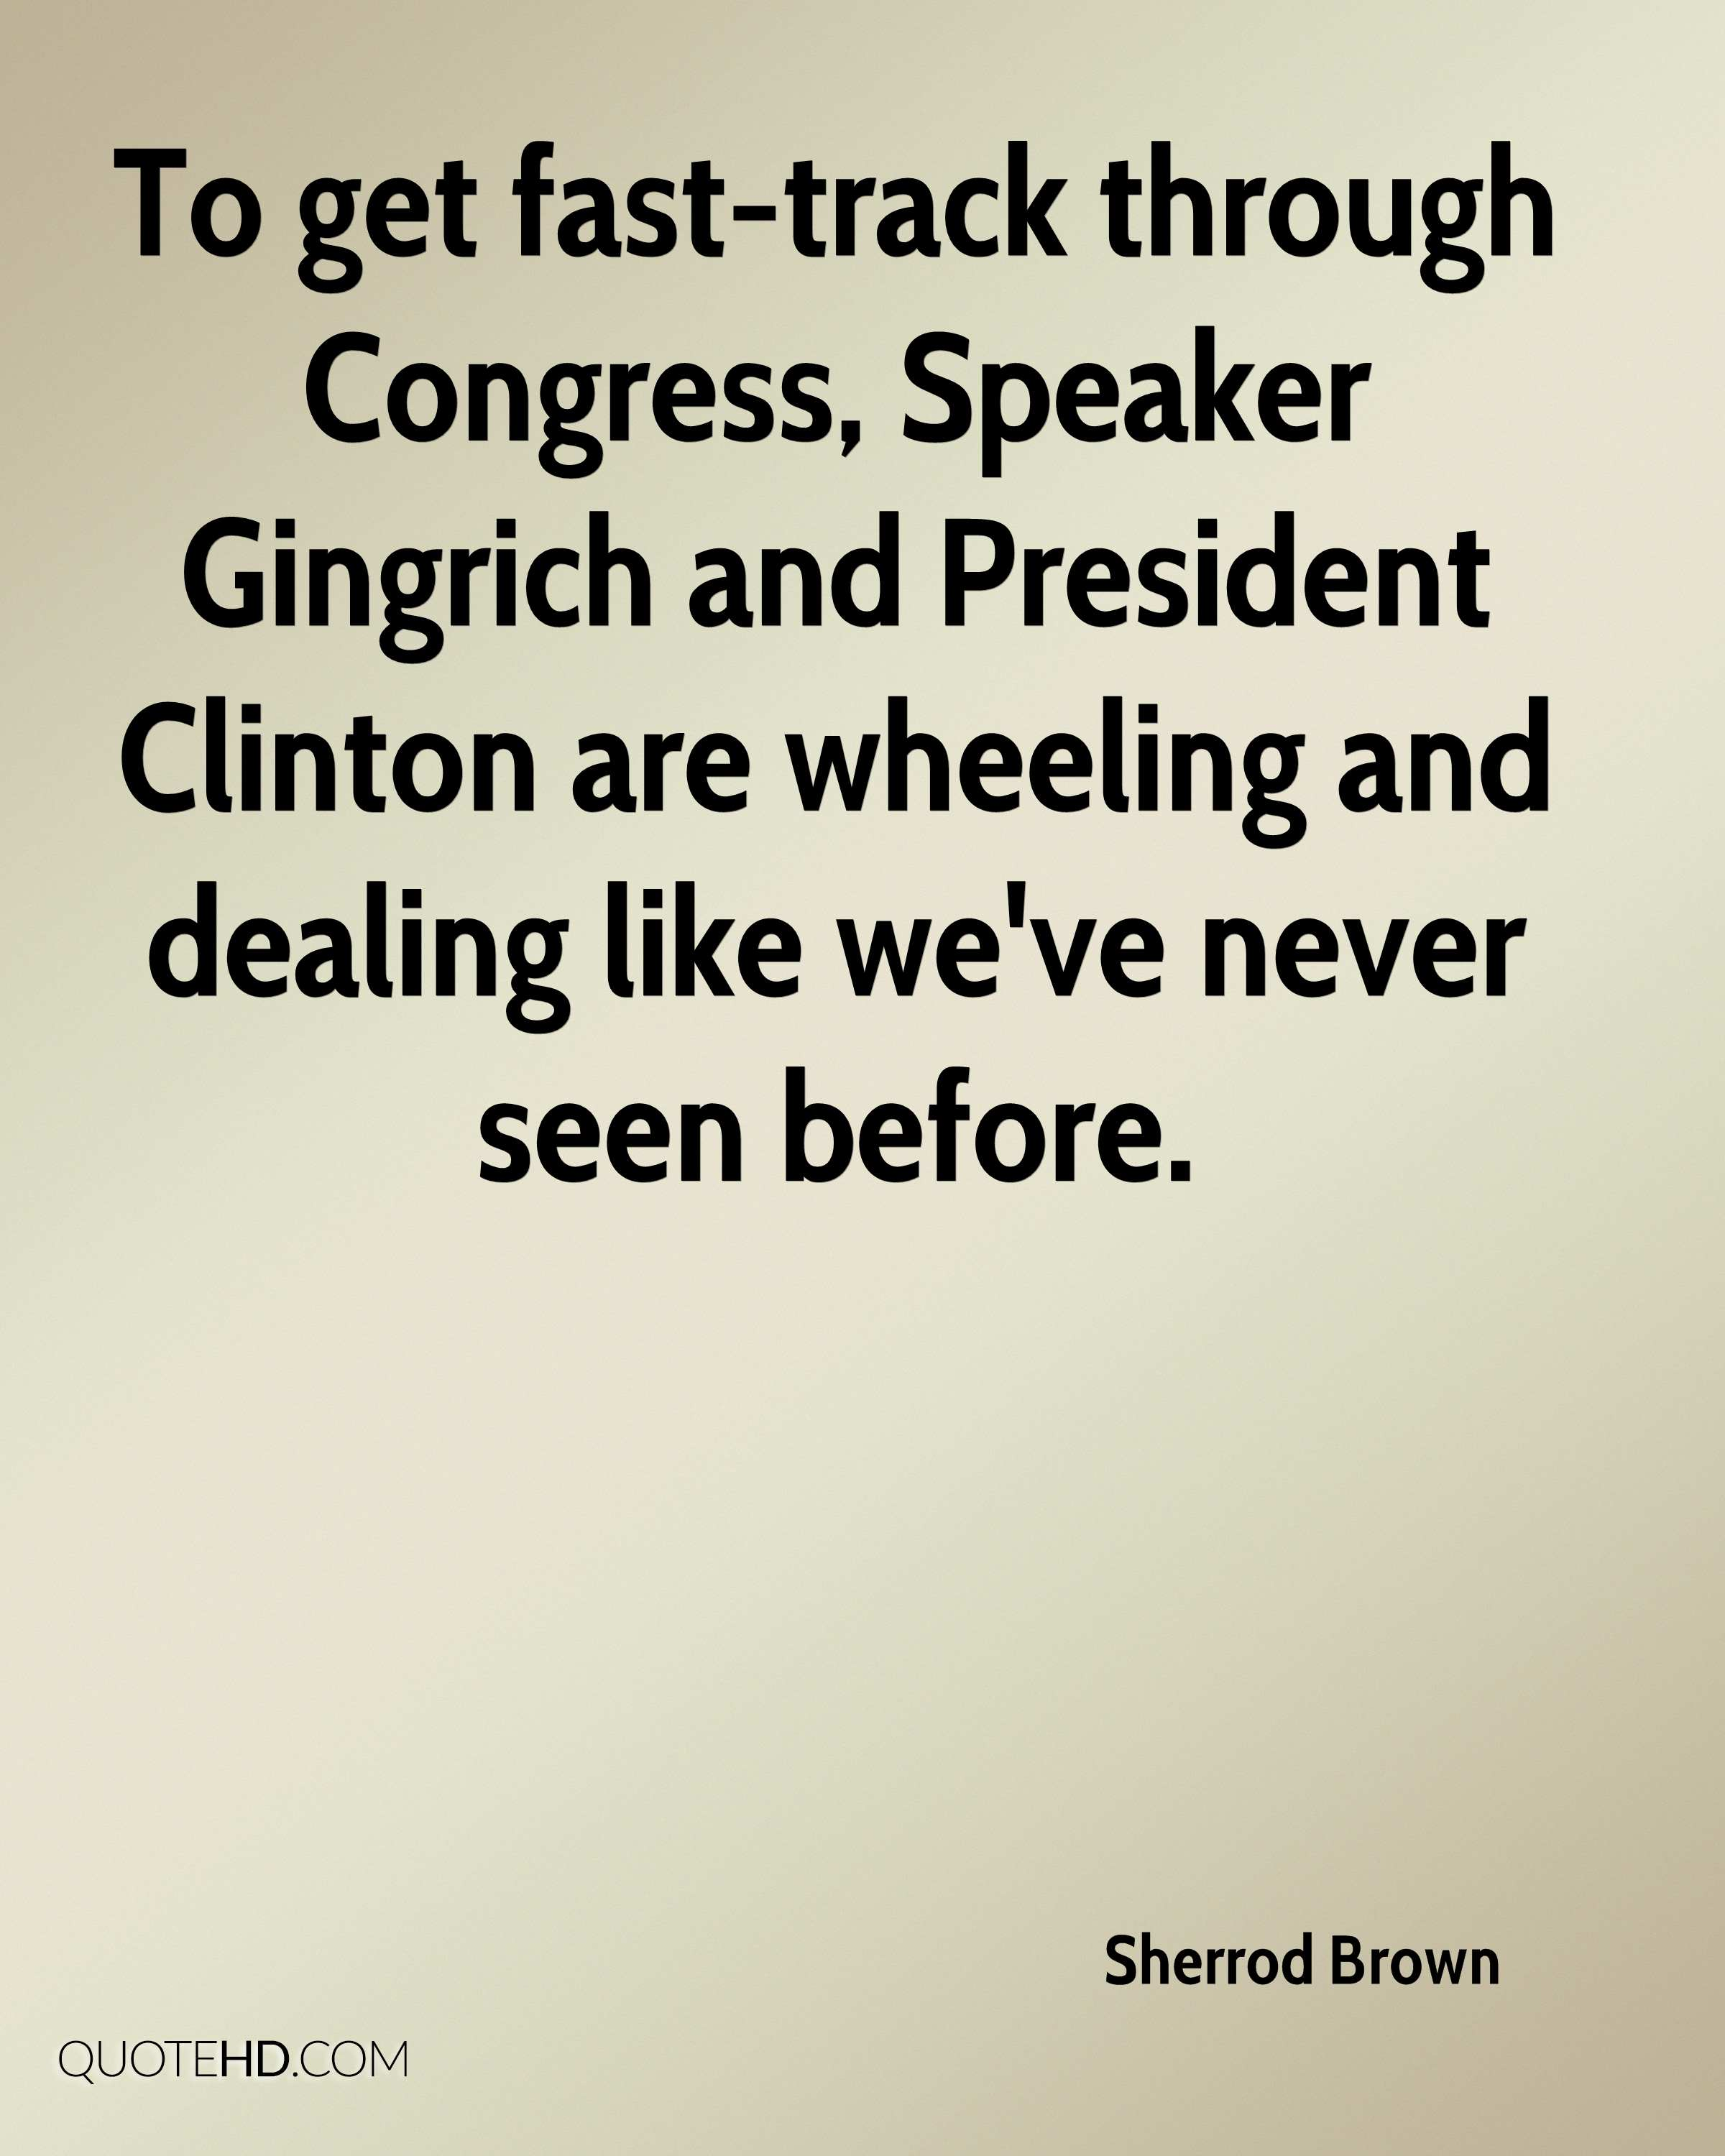 To get fast-track through Congress, Speaker Gingrich and President Clinton are wheeling and dealing like we've never seen before.